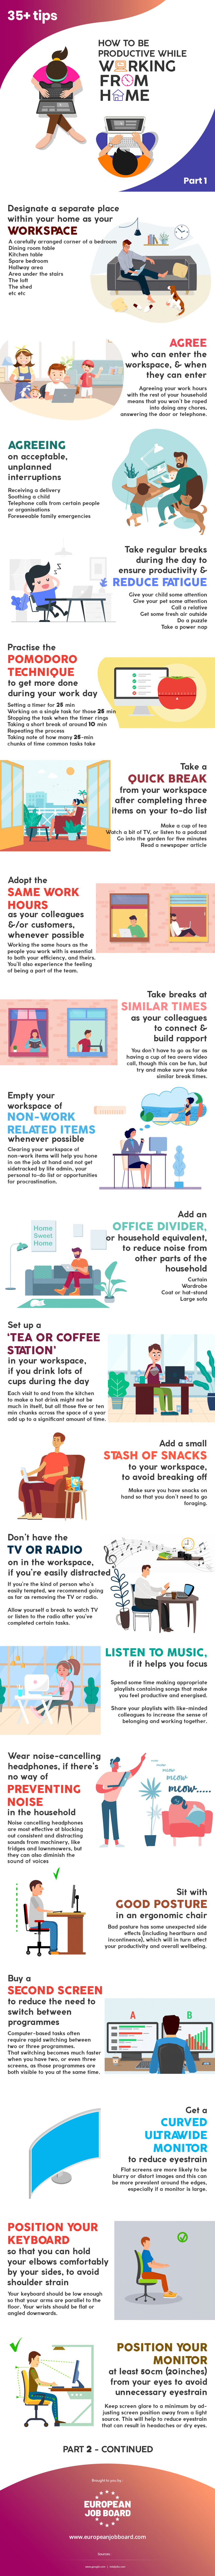 35 Tips to be productive working from home